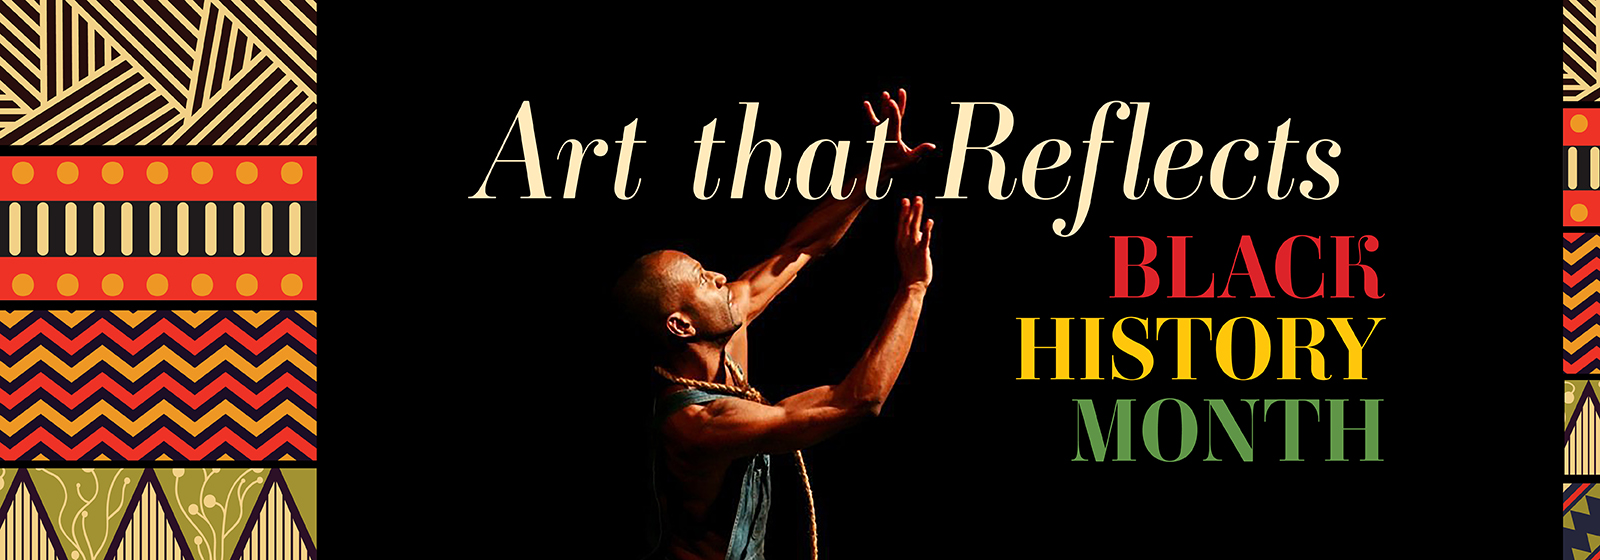 Art That Reflects: Black History Month